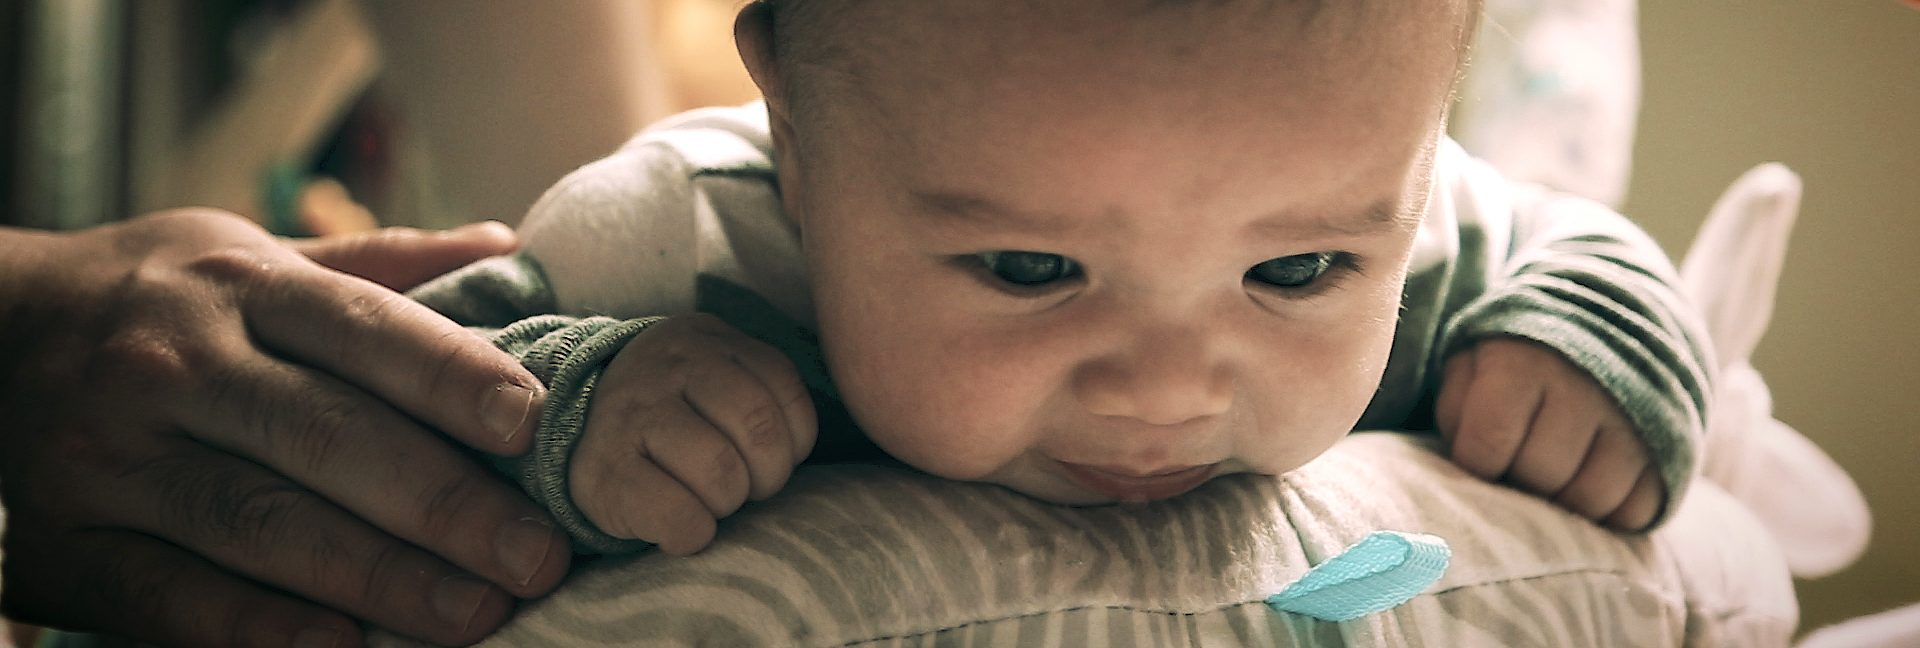 The Baby Mini Doc Project